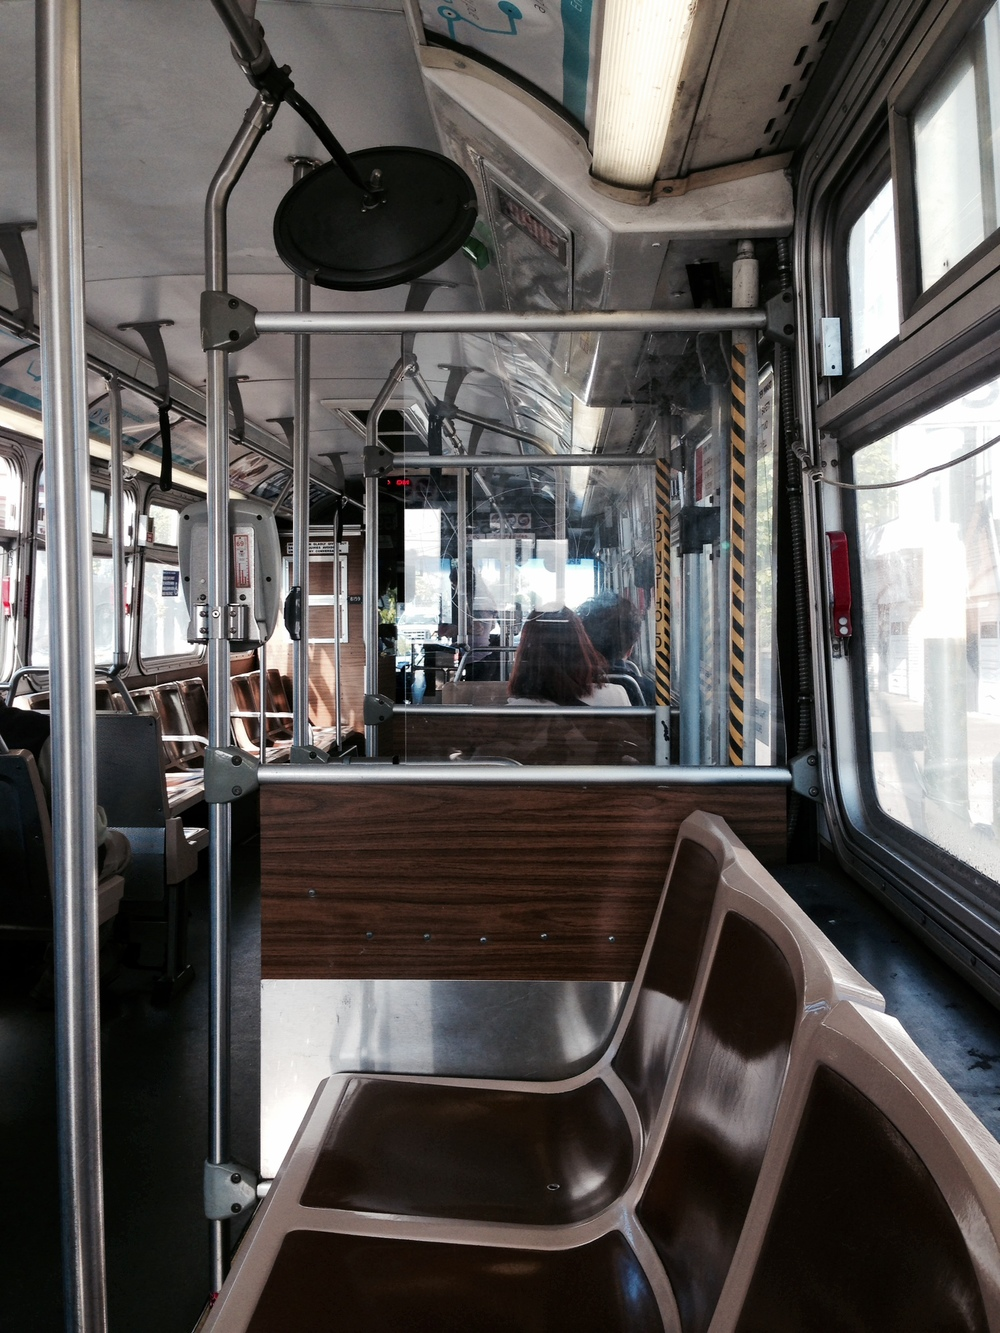 This framed picture is a frame within a frame. Notice that the metal bars of the Muni bus is parallel to the frame of this picture giving the picture more intent.